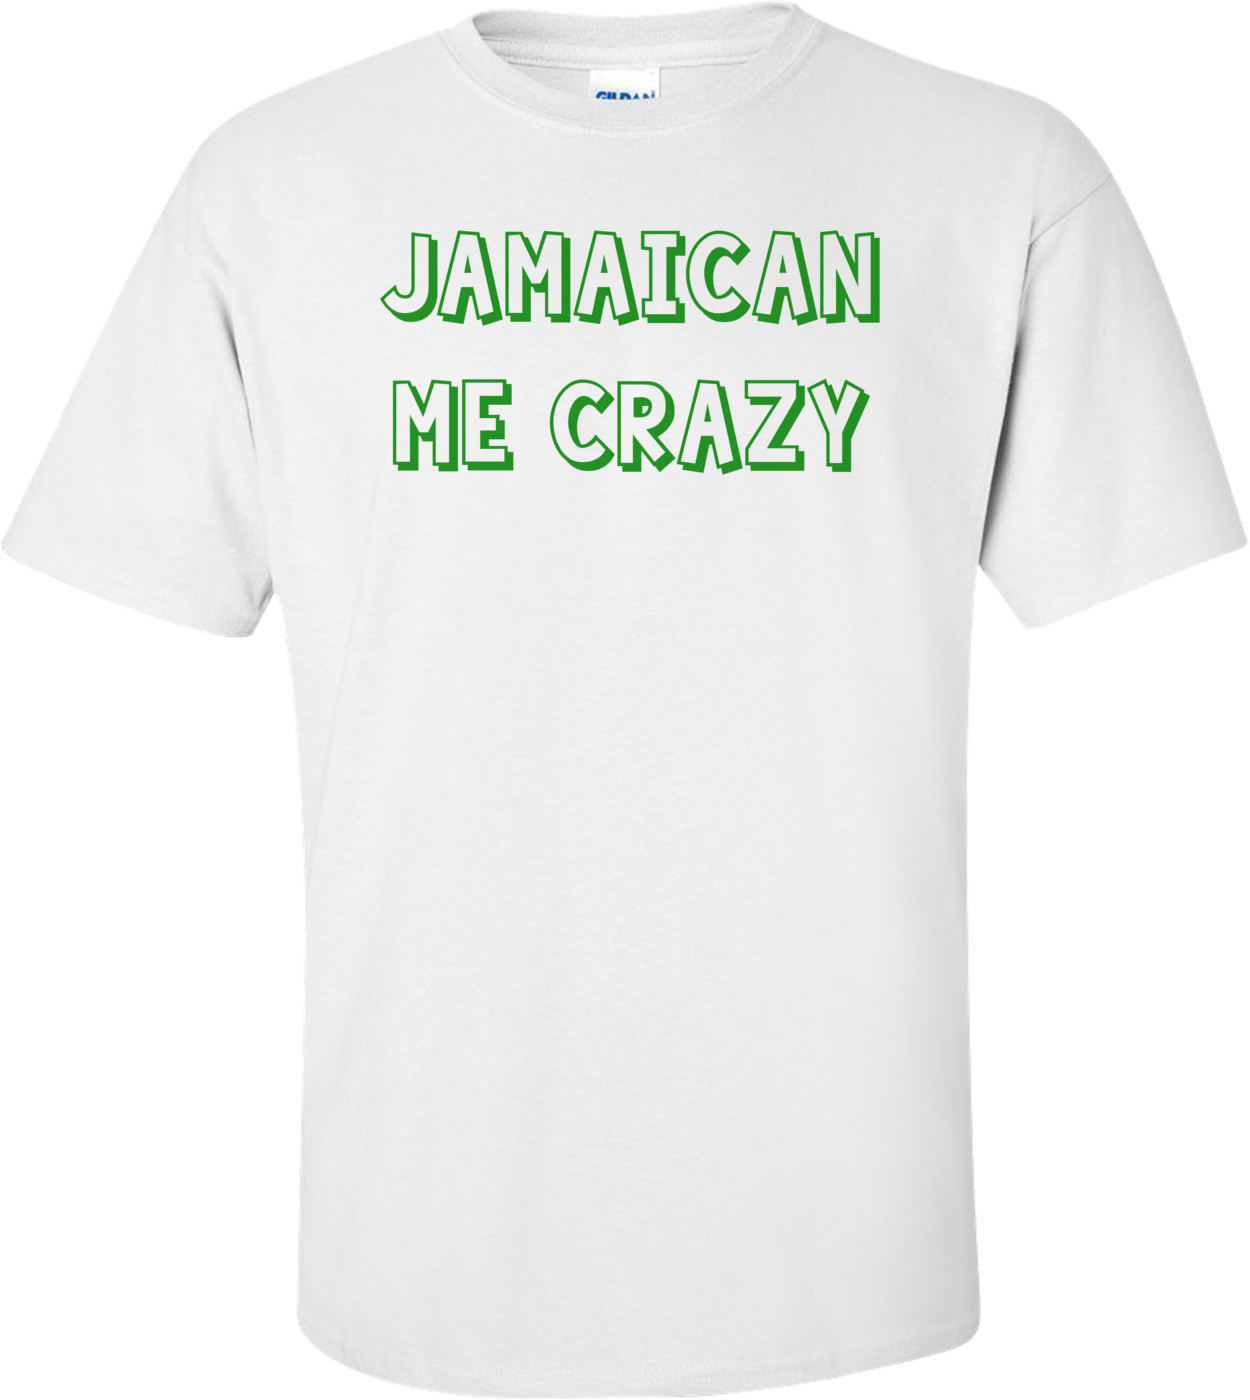 JAMAICAN ME CRAZY Shirt